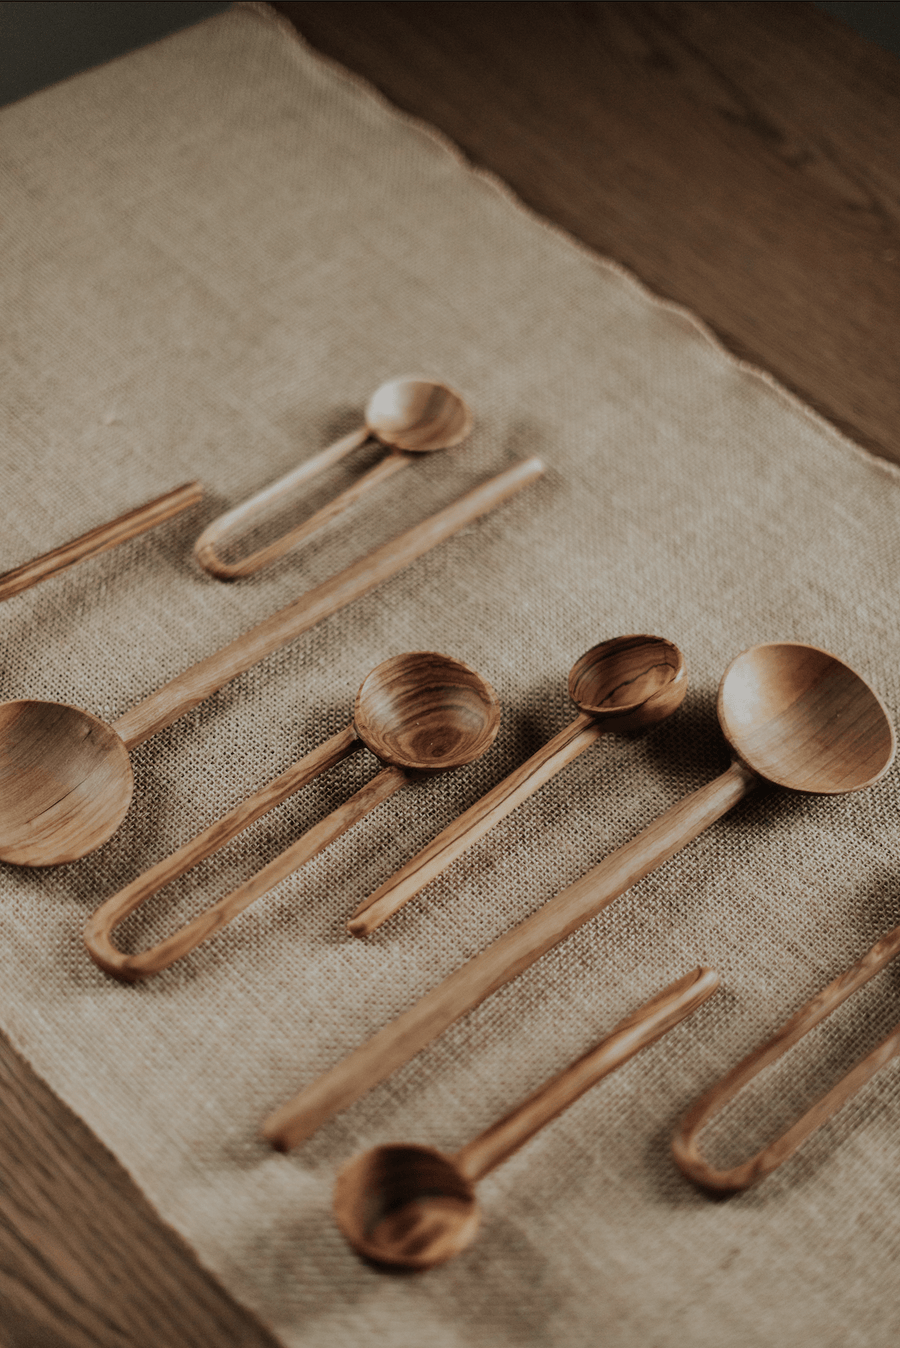 Anupaya LOOP SPOONS | SET OF 3